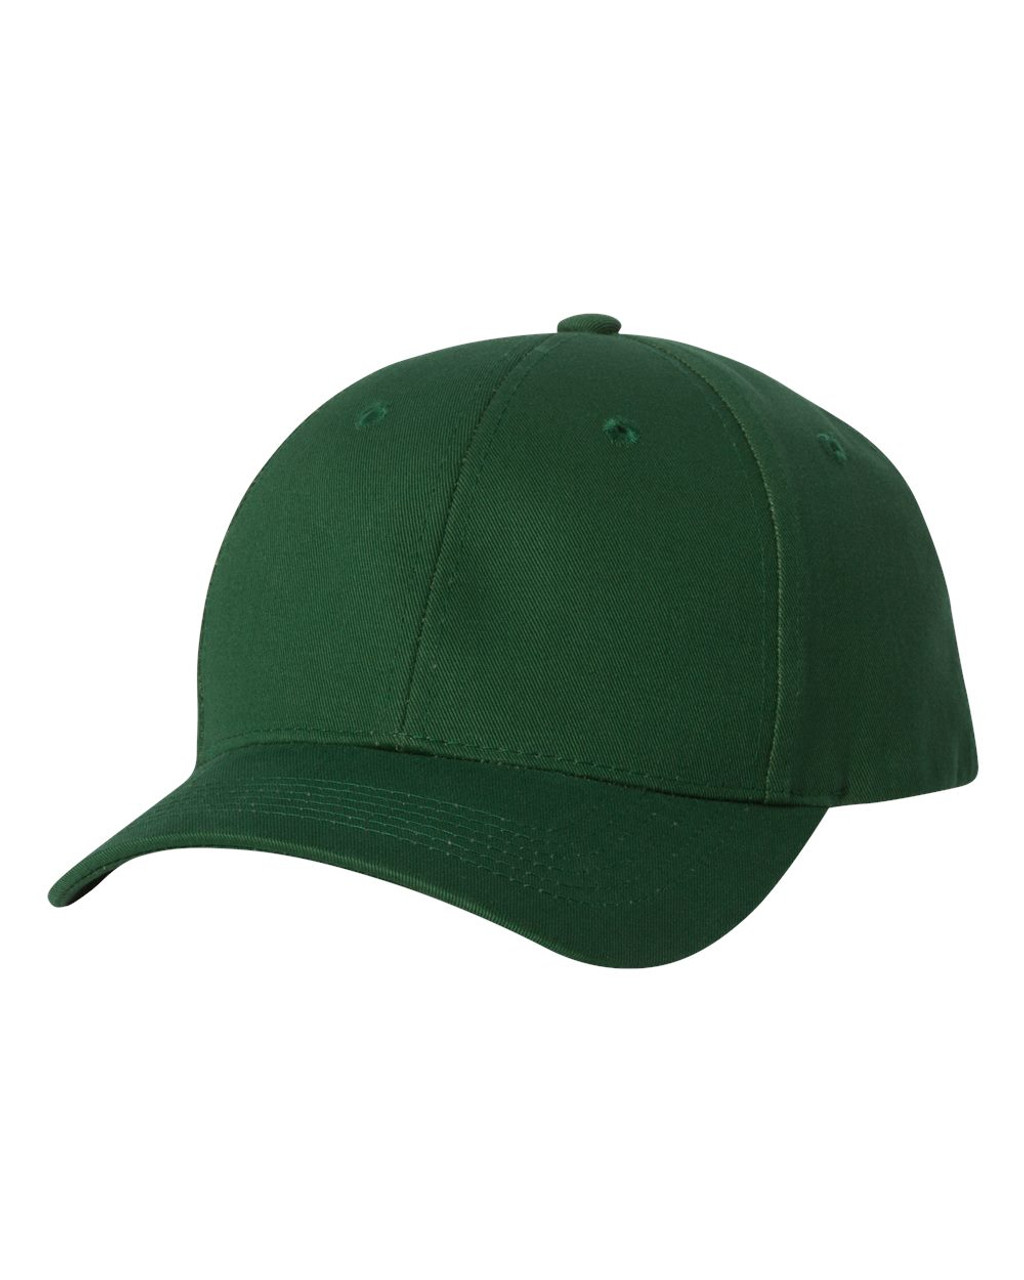 2260 - Twill cap with Velcro Closure by Sportsman in Dark Green